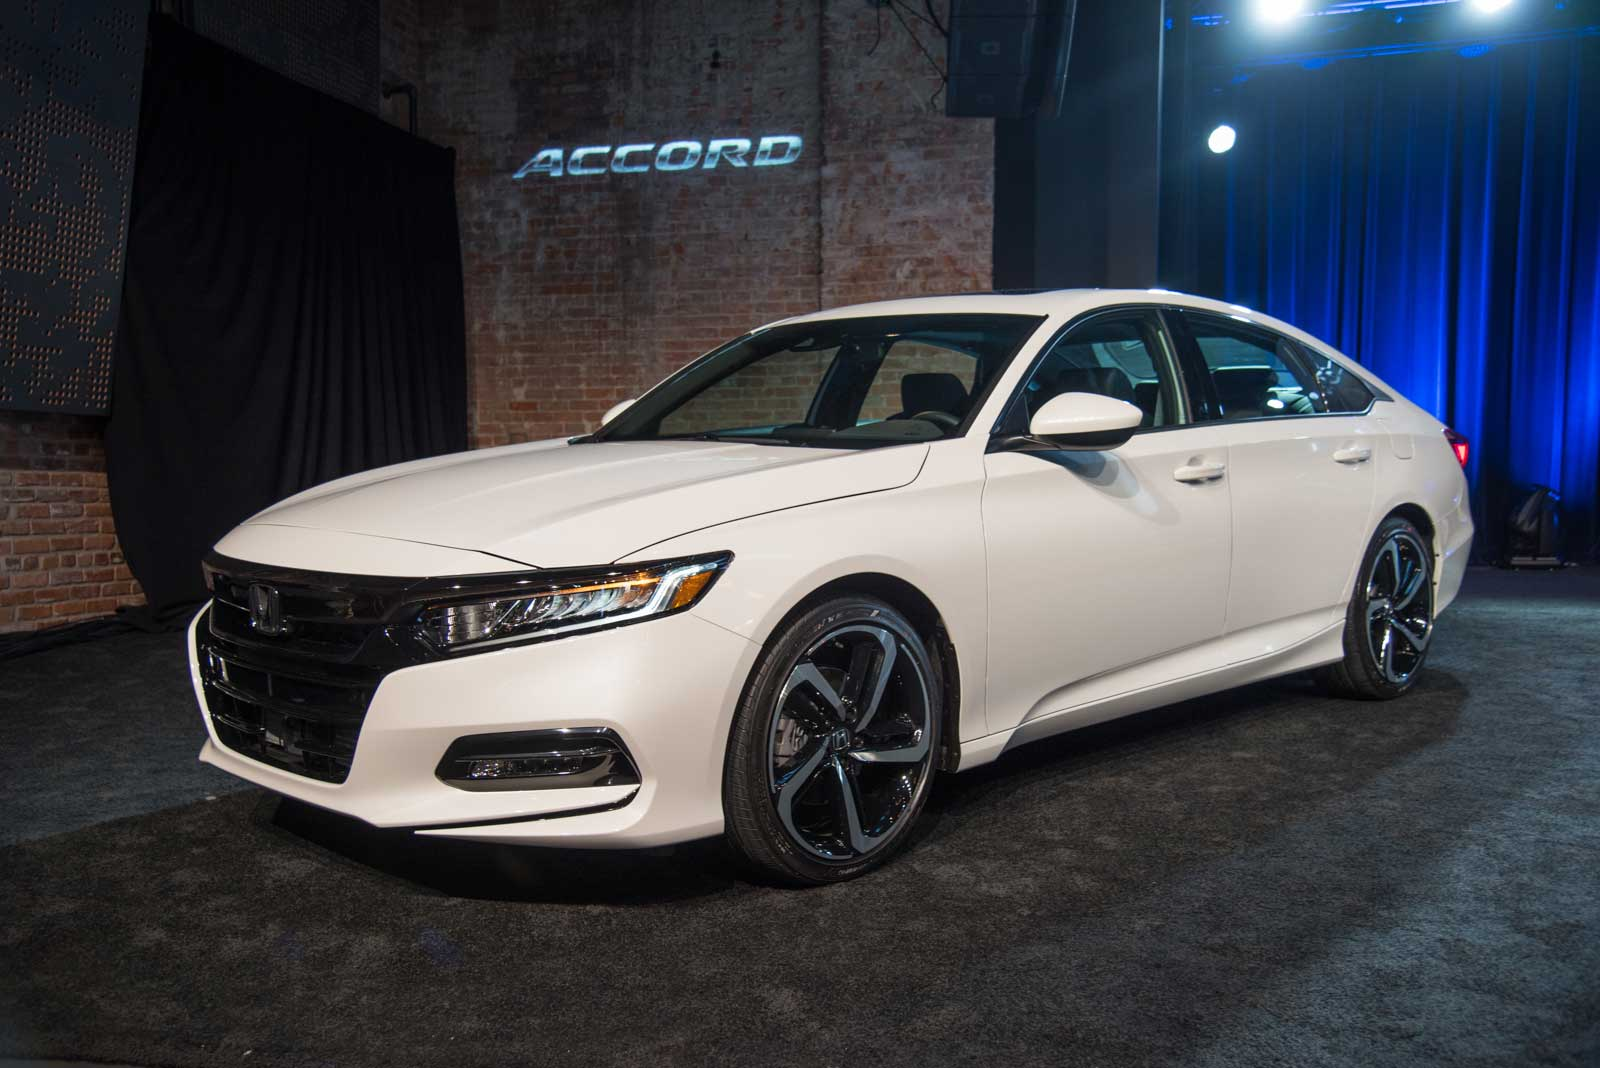 2018 honda accord debuts with turbo engines 10 speed transmission. Black Bedroom Furniture Sets. Home Design Ideas